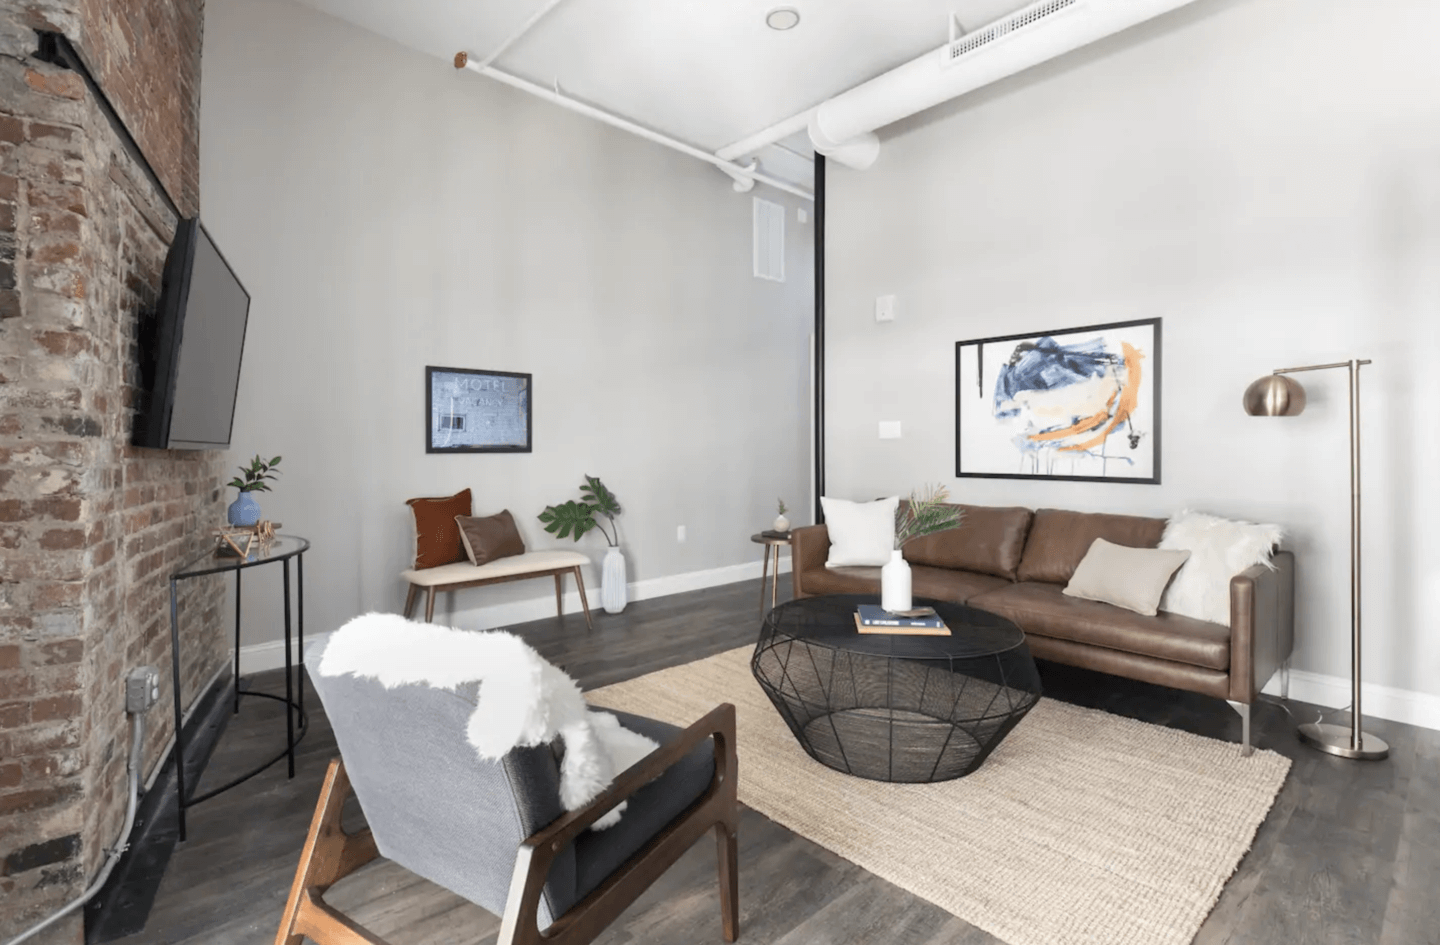 Best Airbnbs in Boston